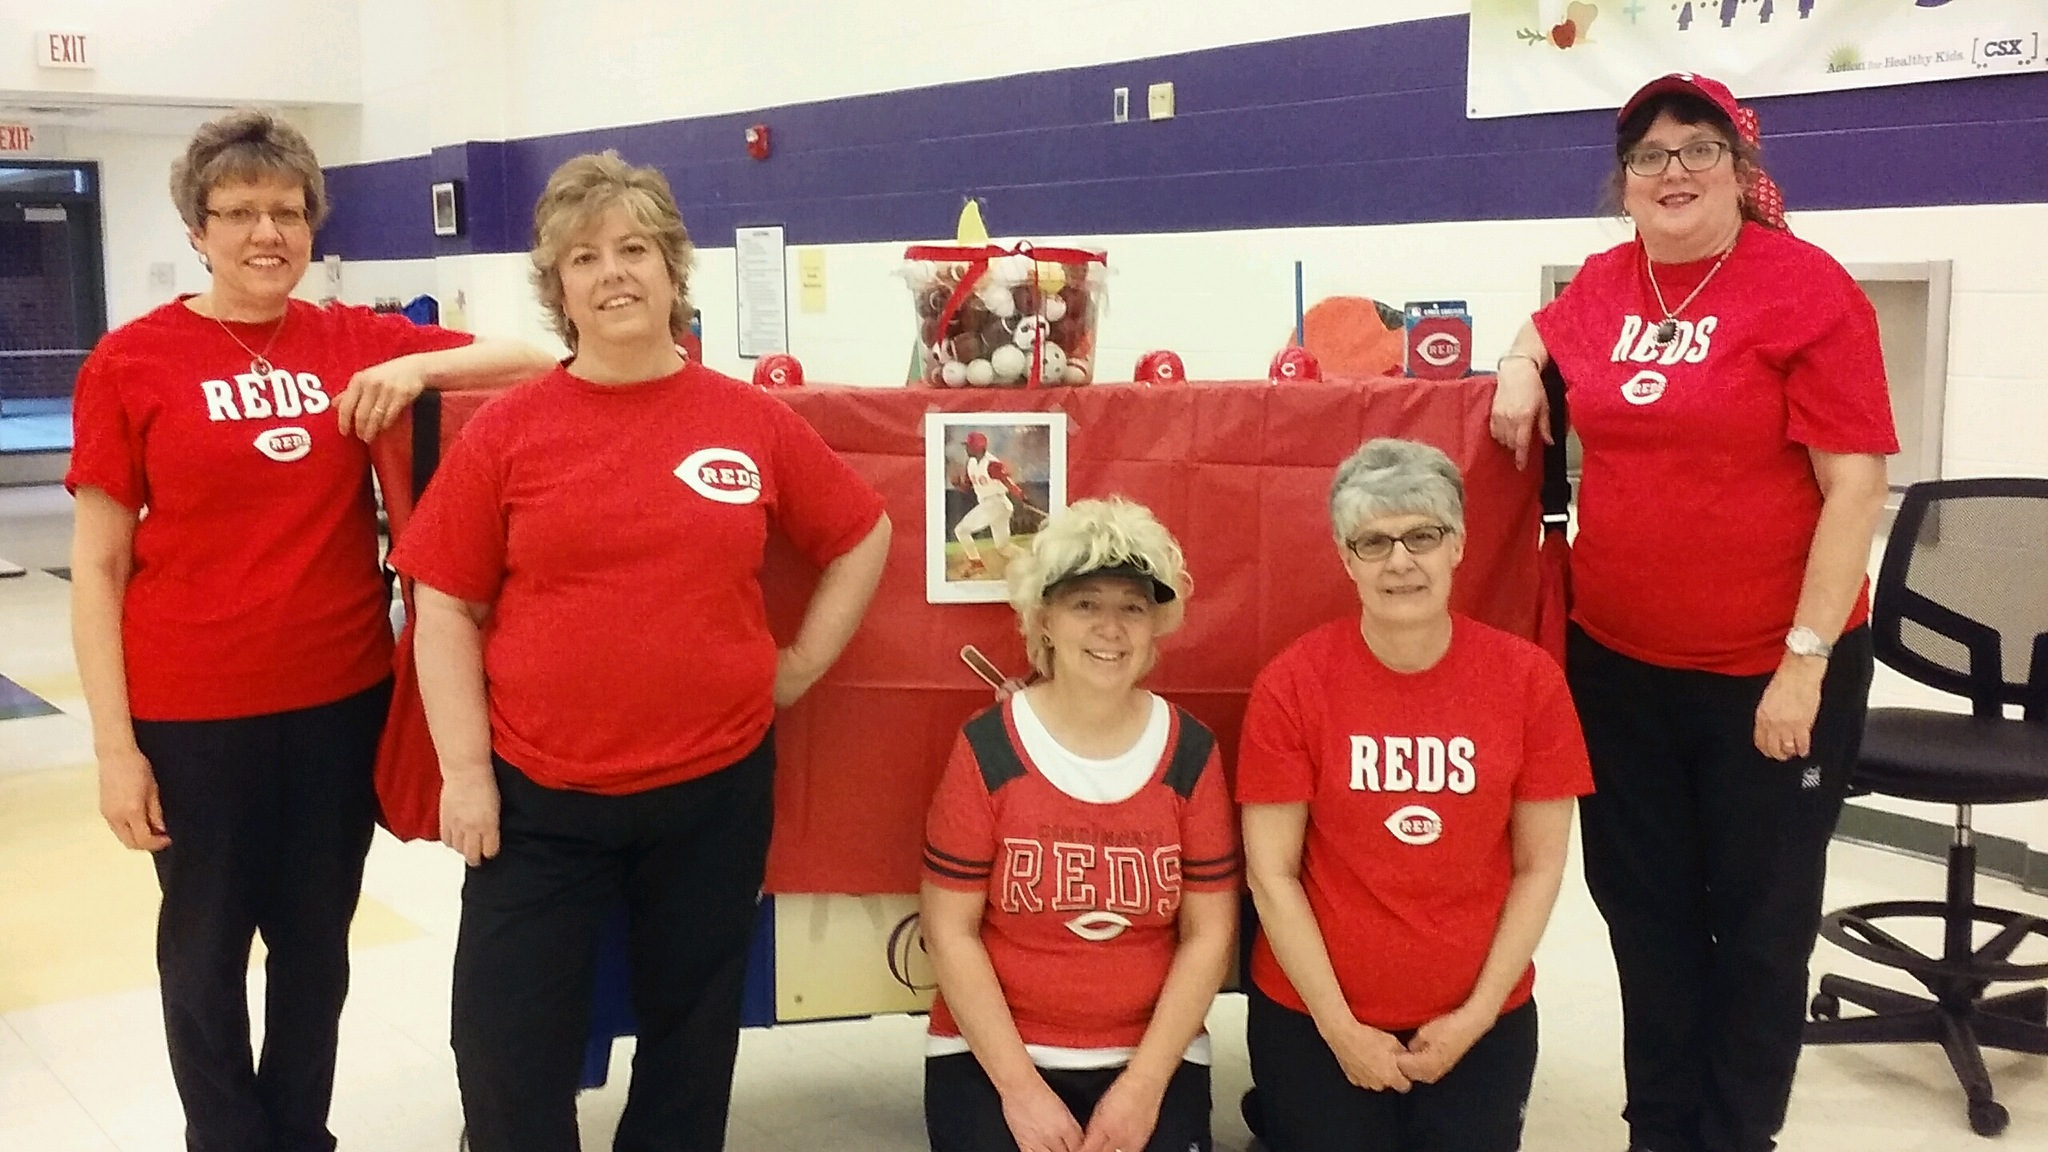 Campbell Ridge Elementary - Reds Day